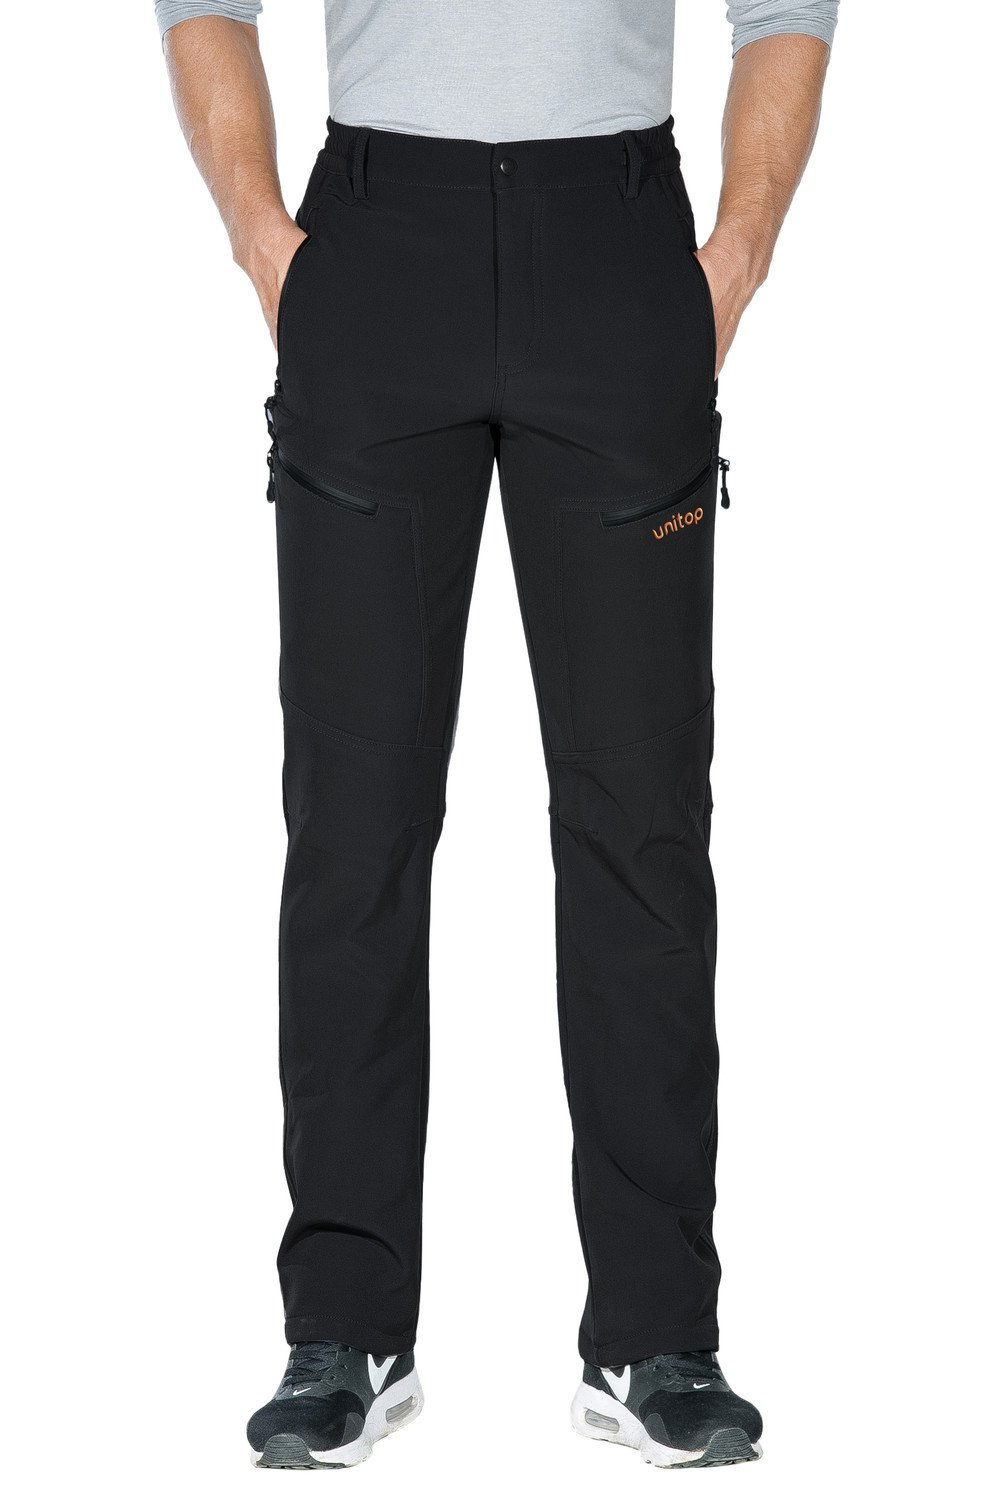 7f67a411535 Unitop Men s Winter Warmth Water-Resistant Snowsports Ski Snow Pants  product image